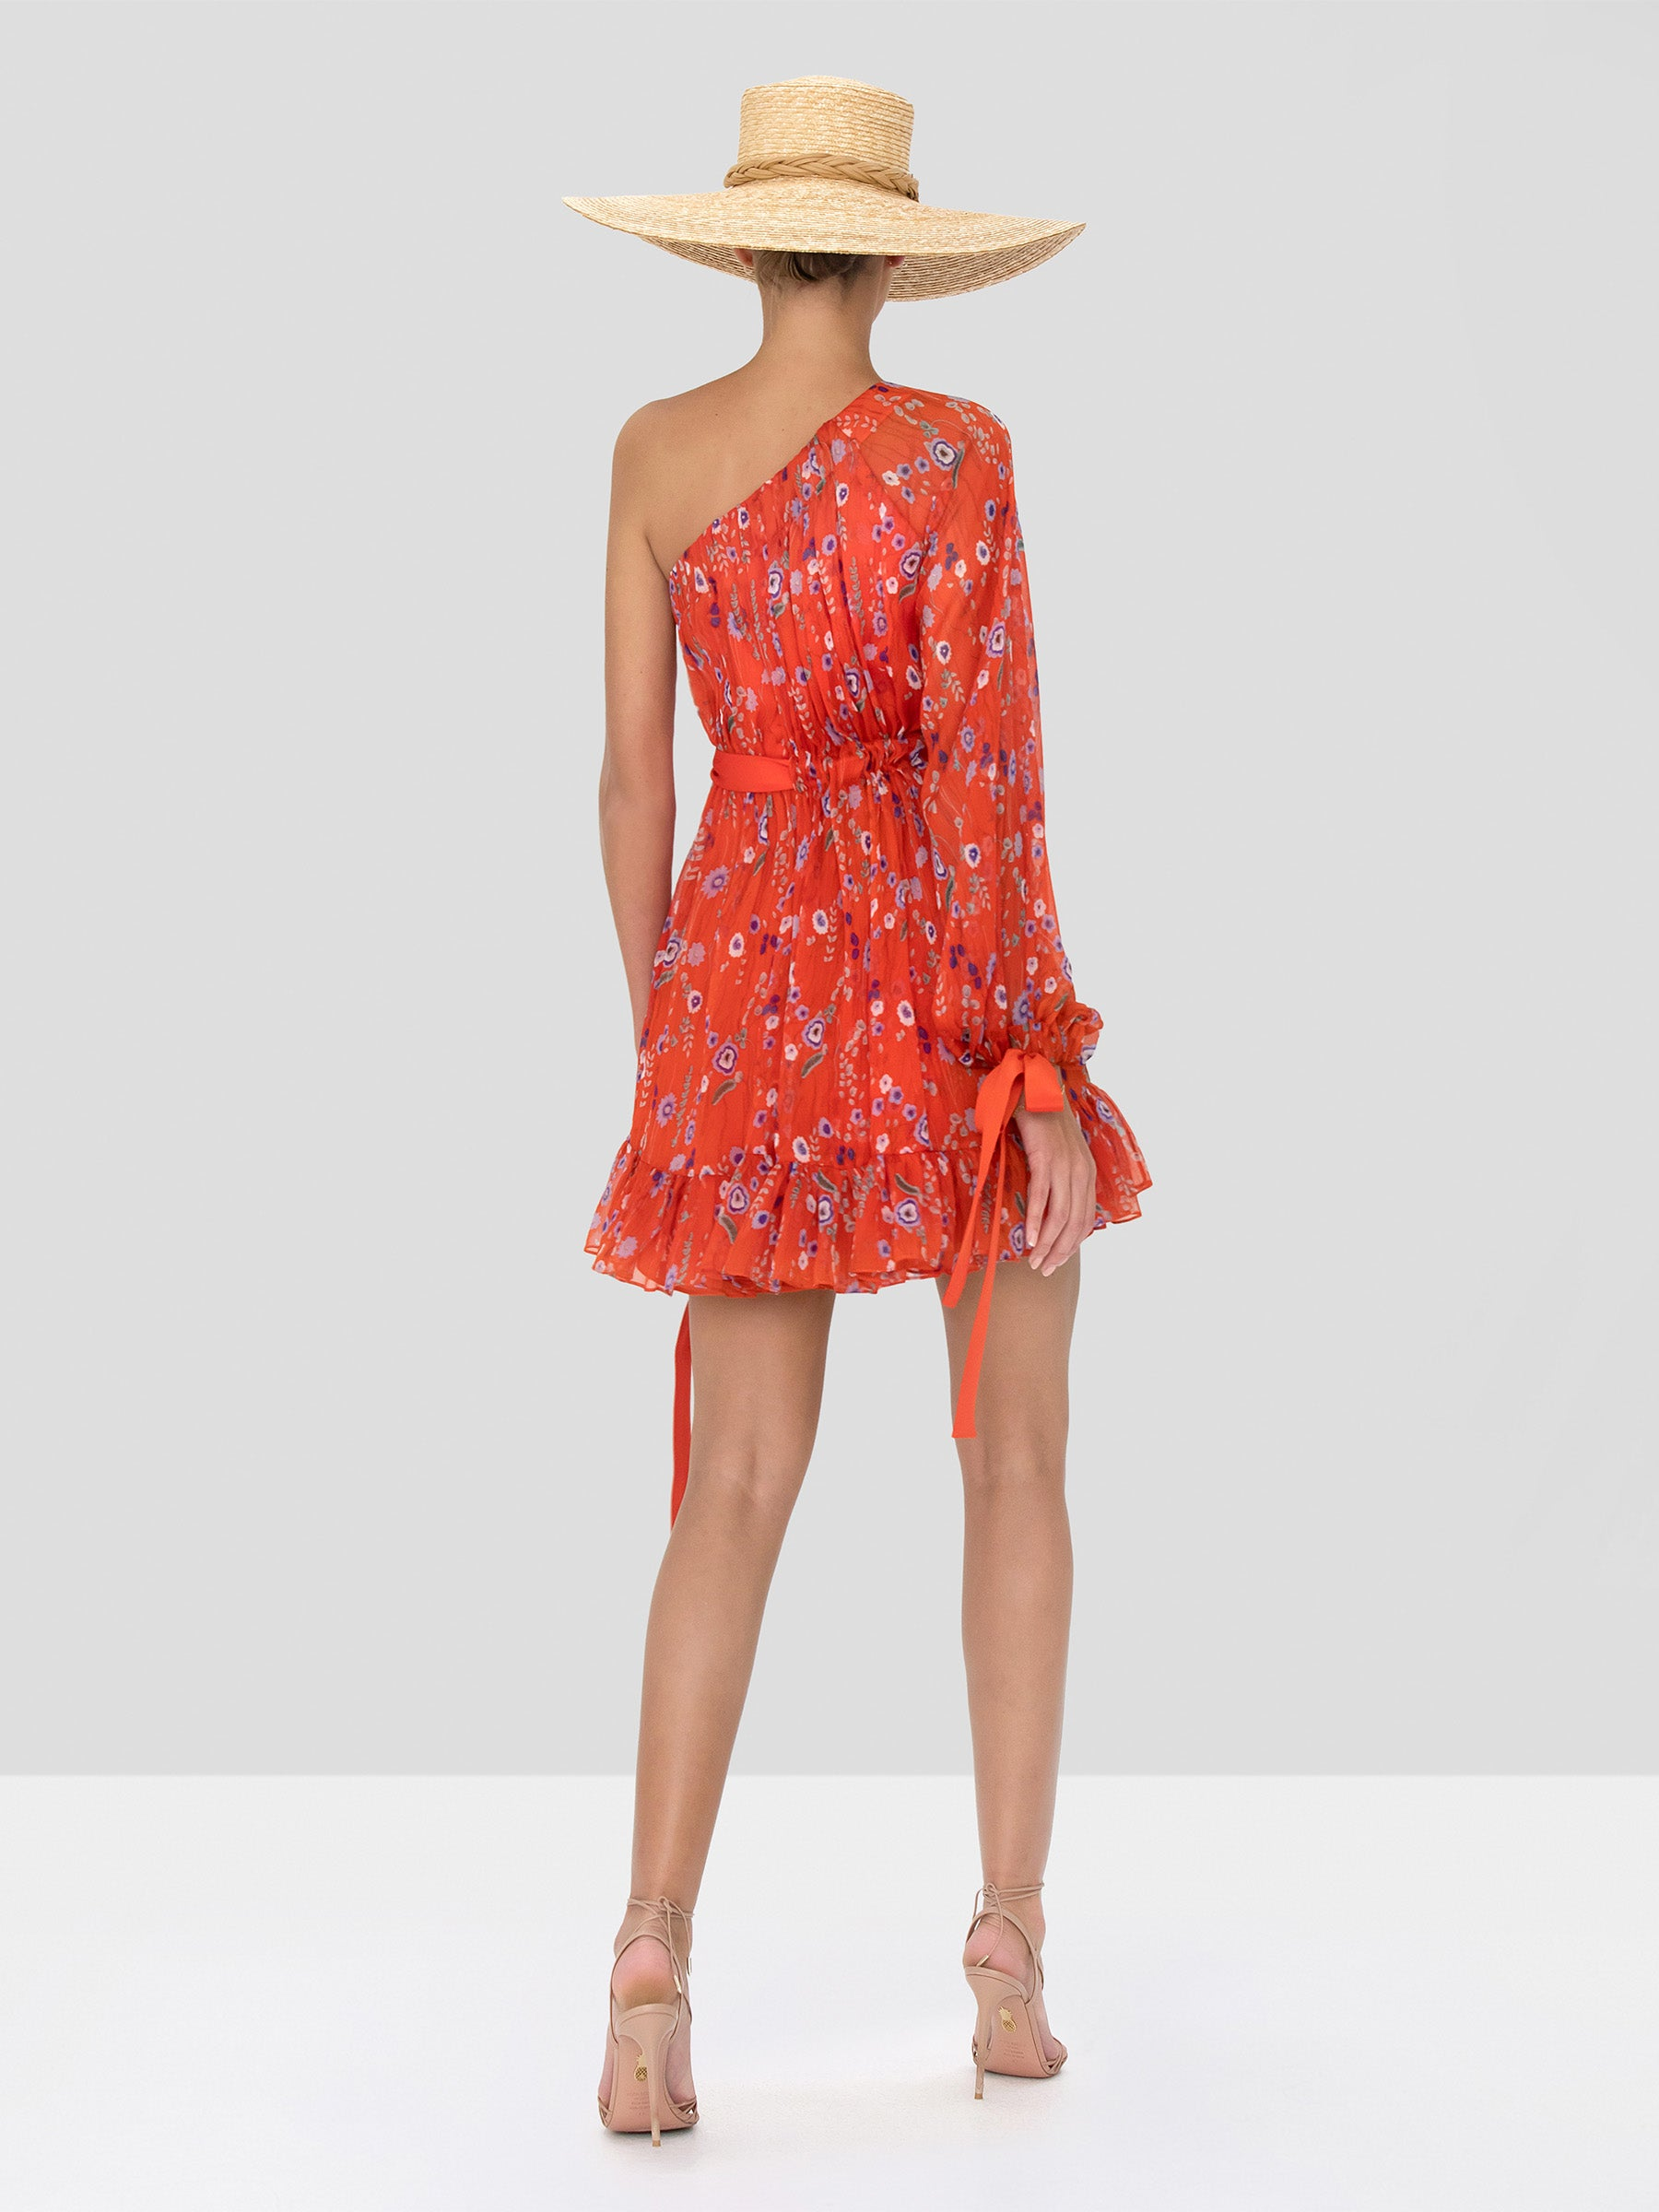 Alexis Edyta Dress in Red Bouquet from Spring Summer 2020 - Rear View